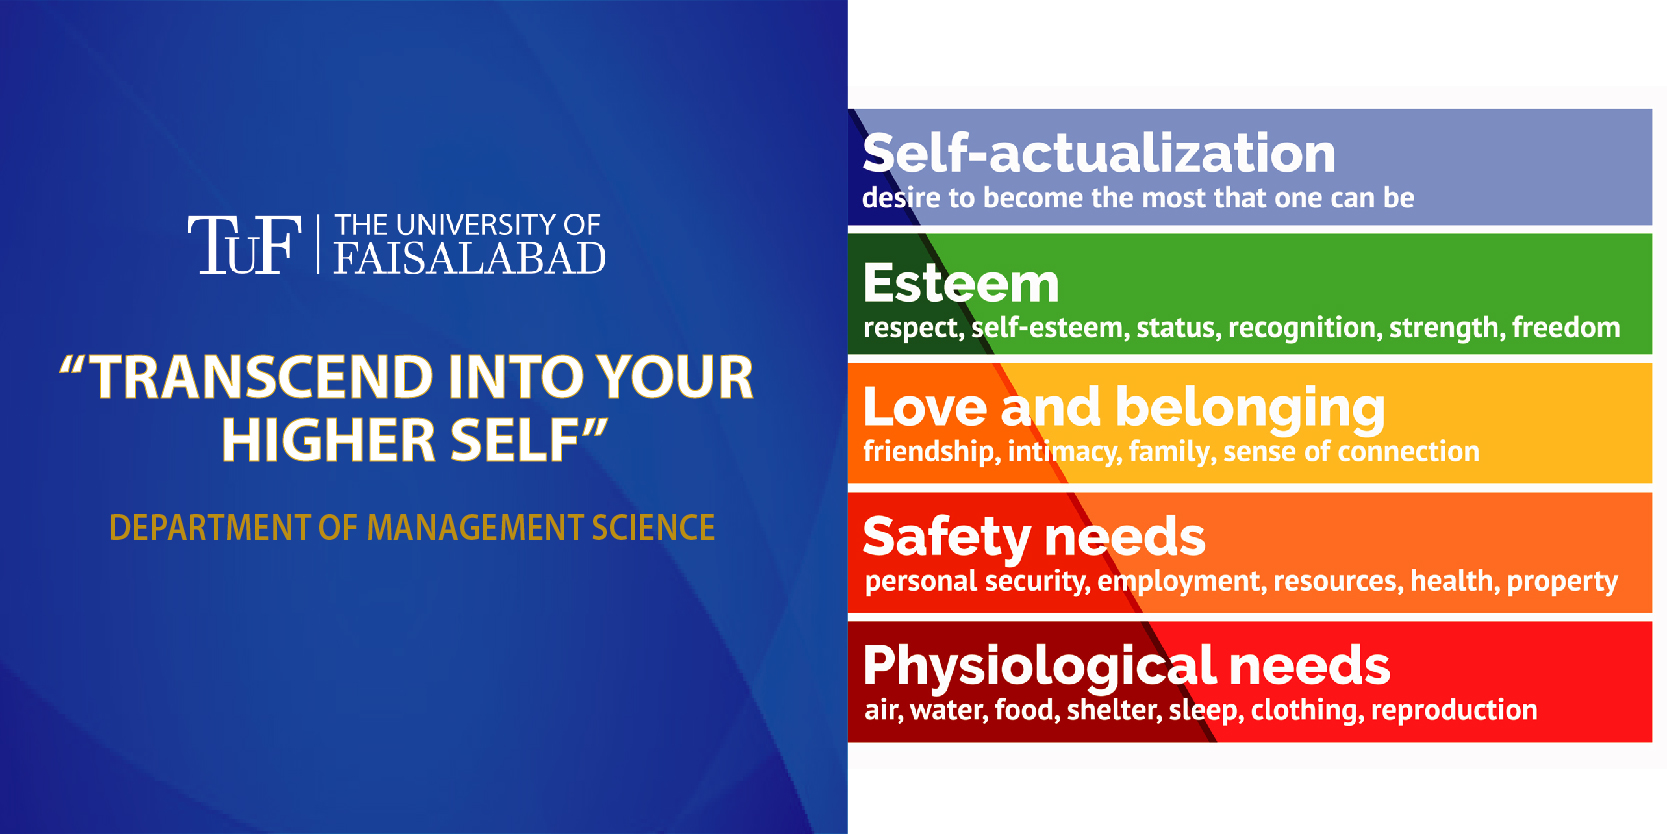 lecture-on-transcend-into-your-higher-self